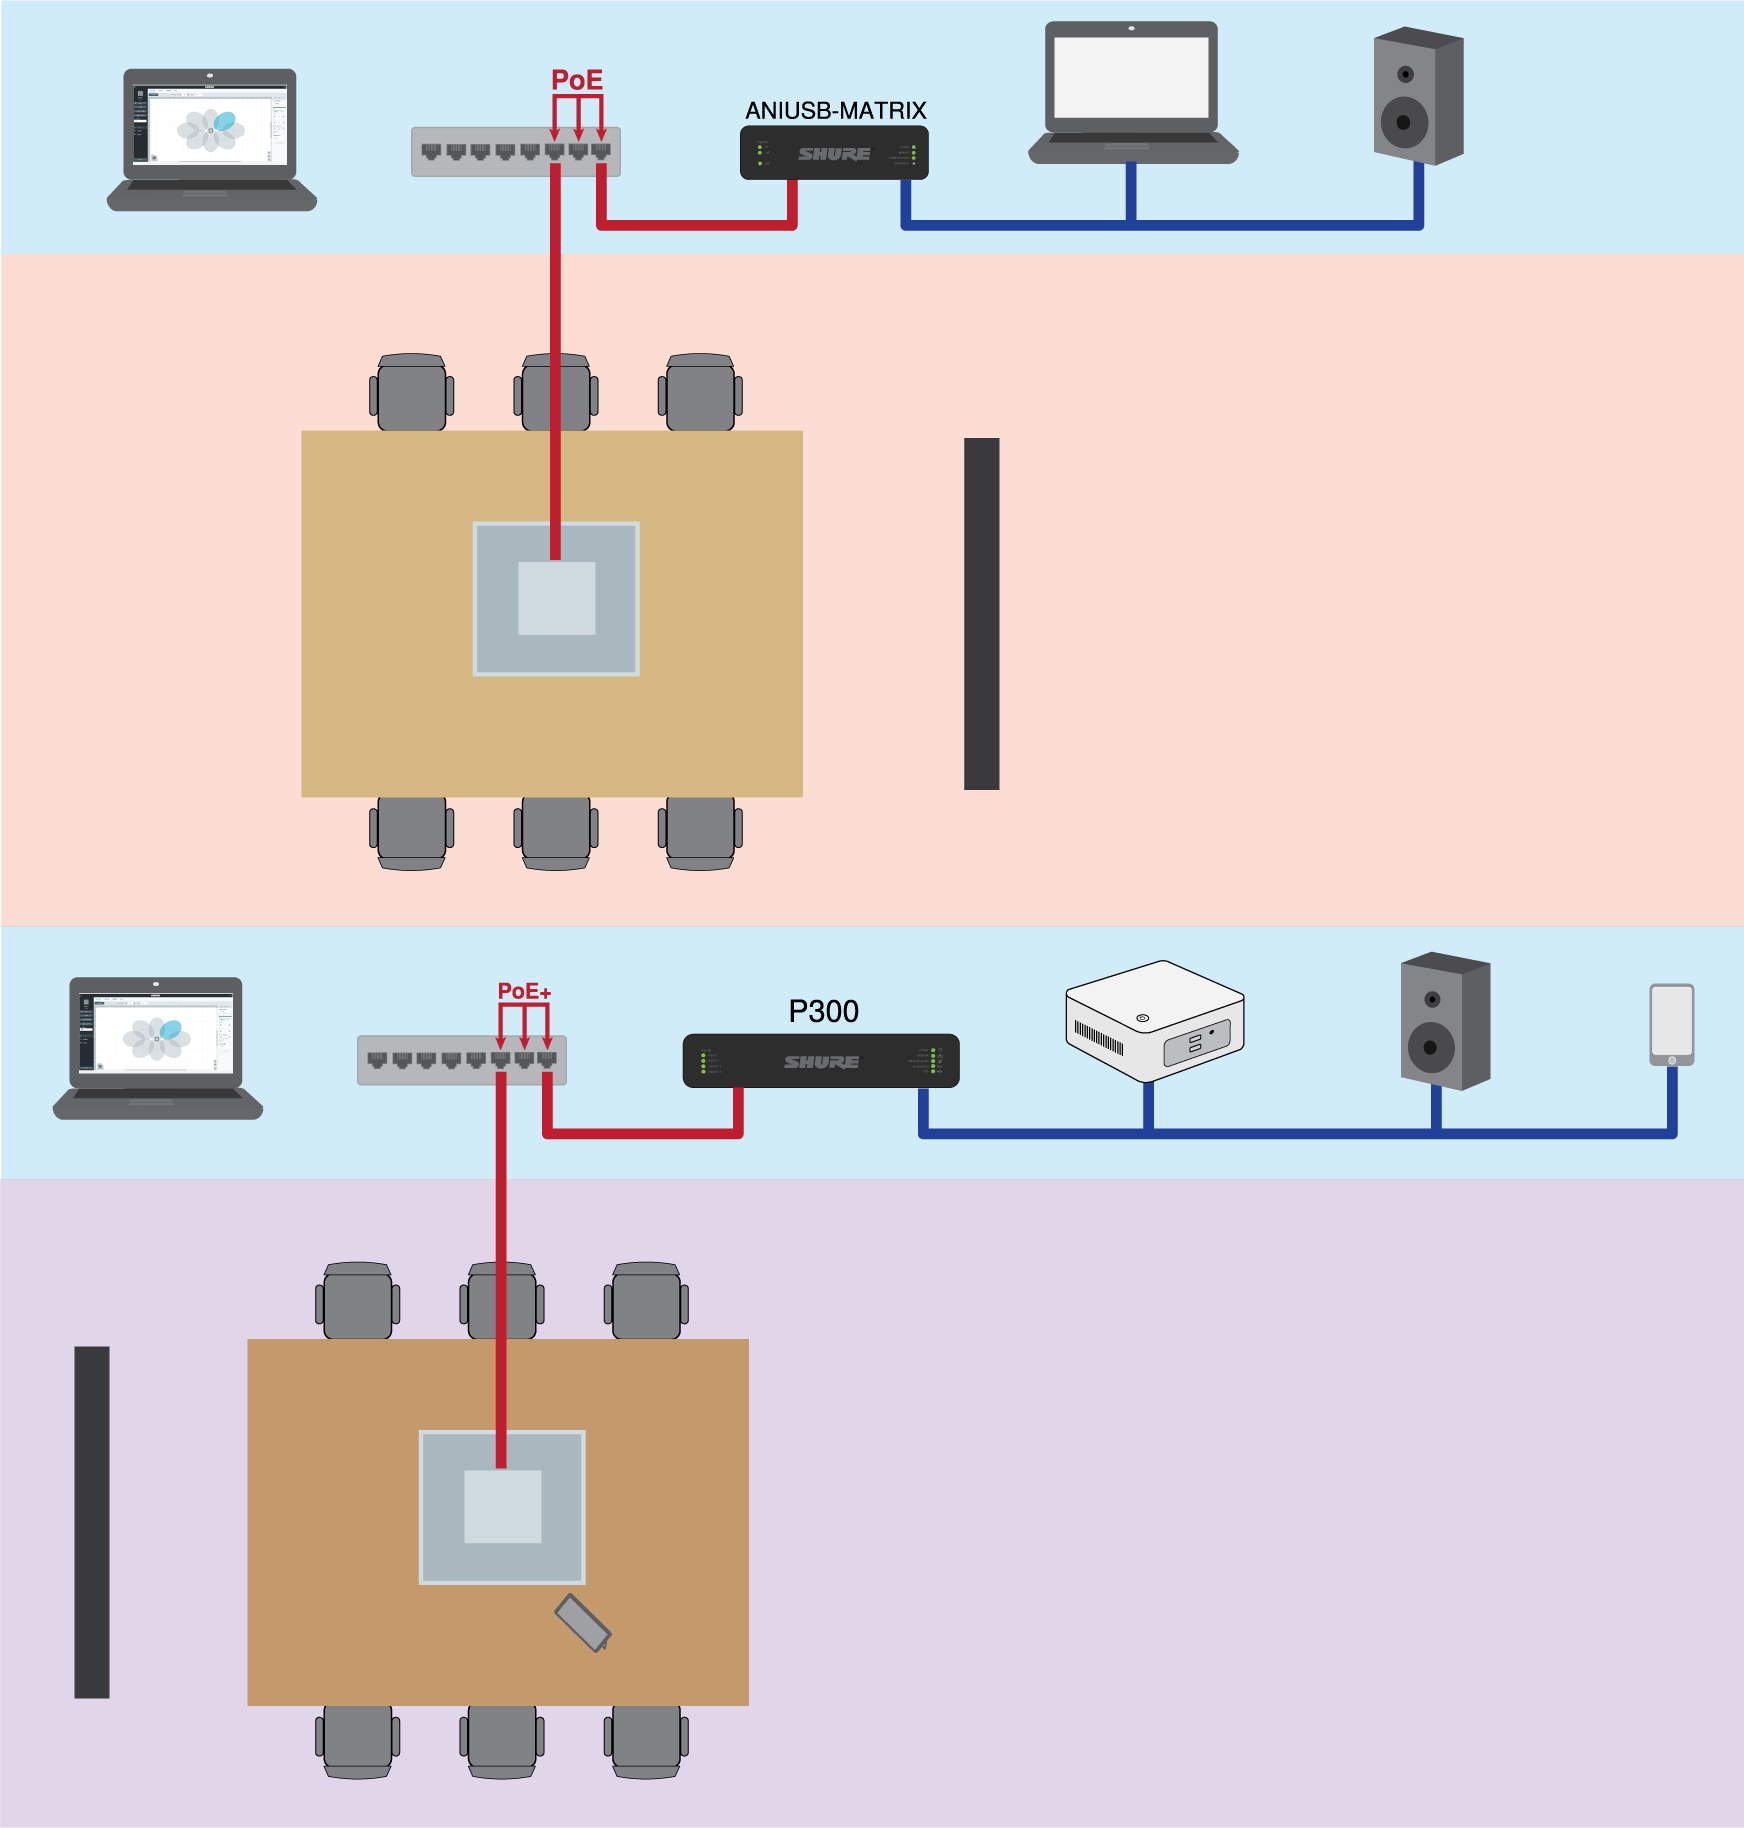 2 use case illustrations for MXA910s and a soft codec: 1) With ANIUSB-MATRIX, laptop, and loudspeakers. 2) With P300, NUC, loudspeakers, and mobile device.